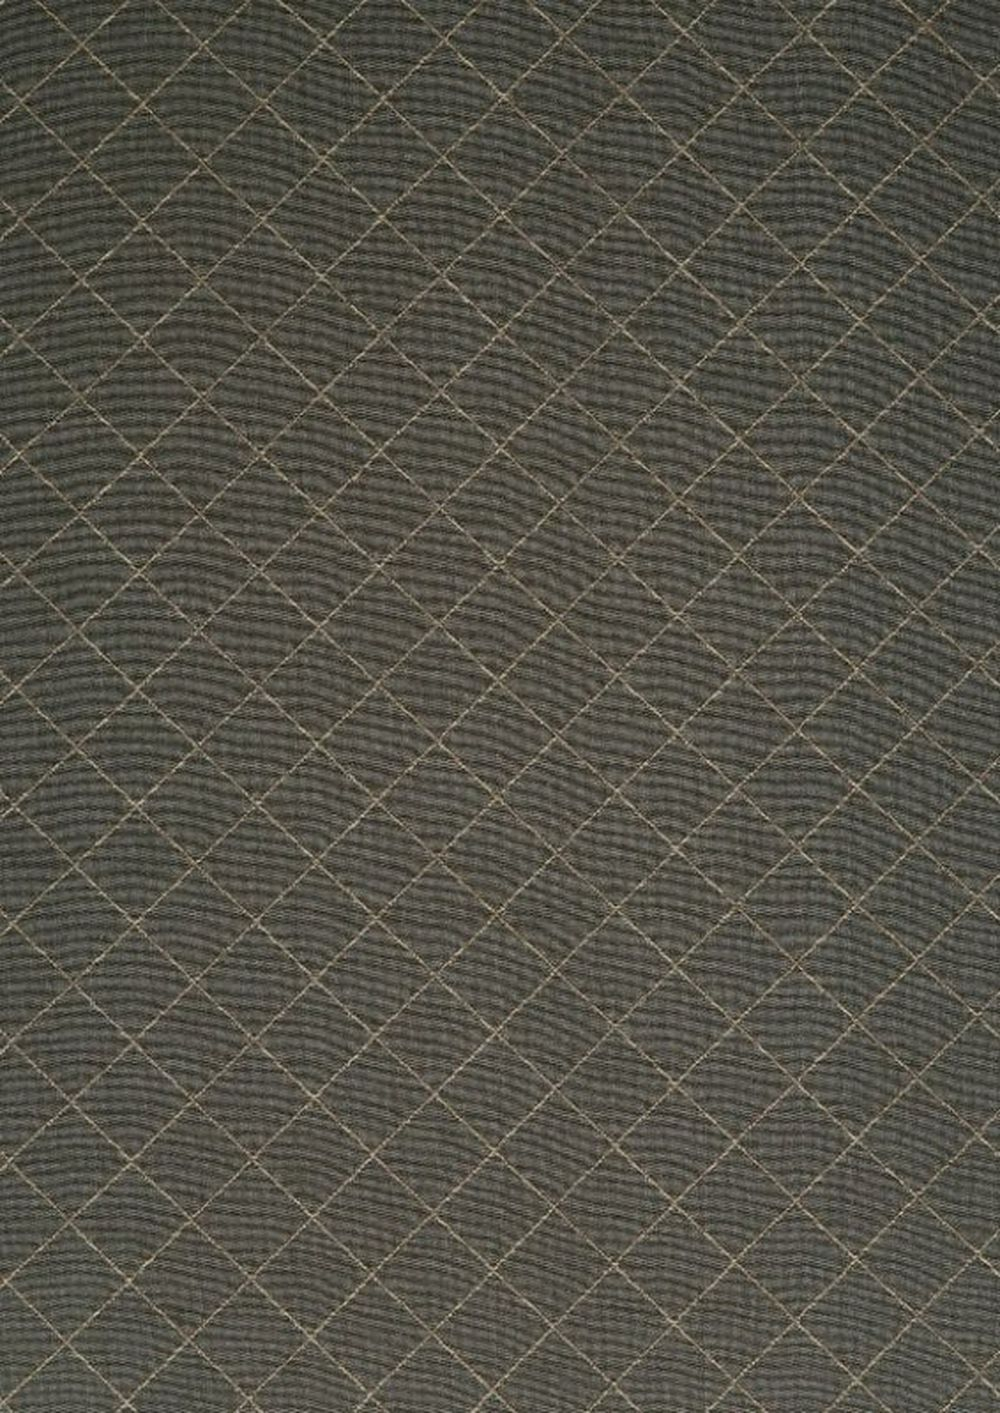 Photo of the fabric Patch FR-One Pinecone swatch by FR-One. Use for Curtains, Accessory, Top of Bed. Style of Geometric, Pattern